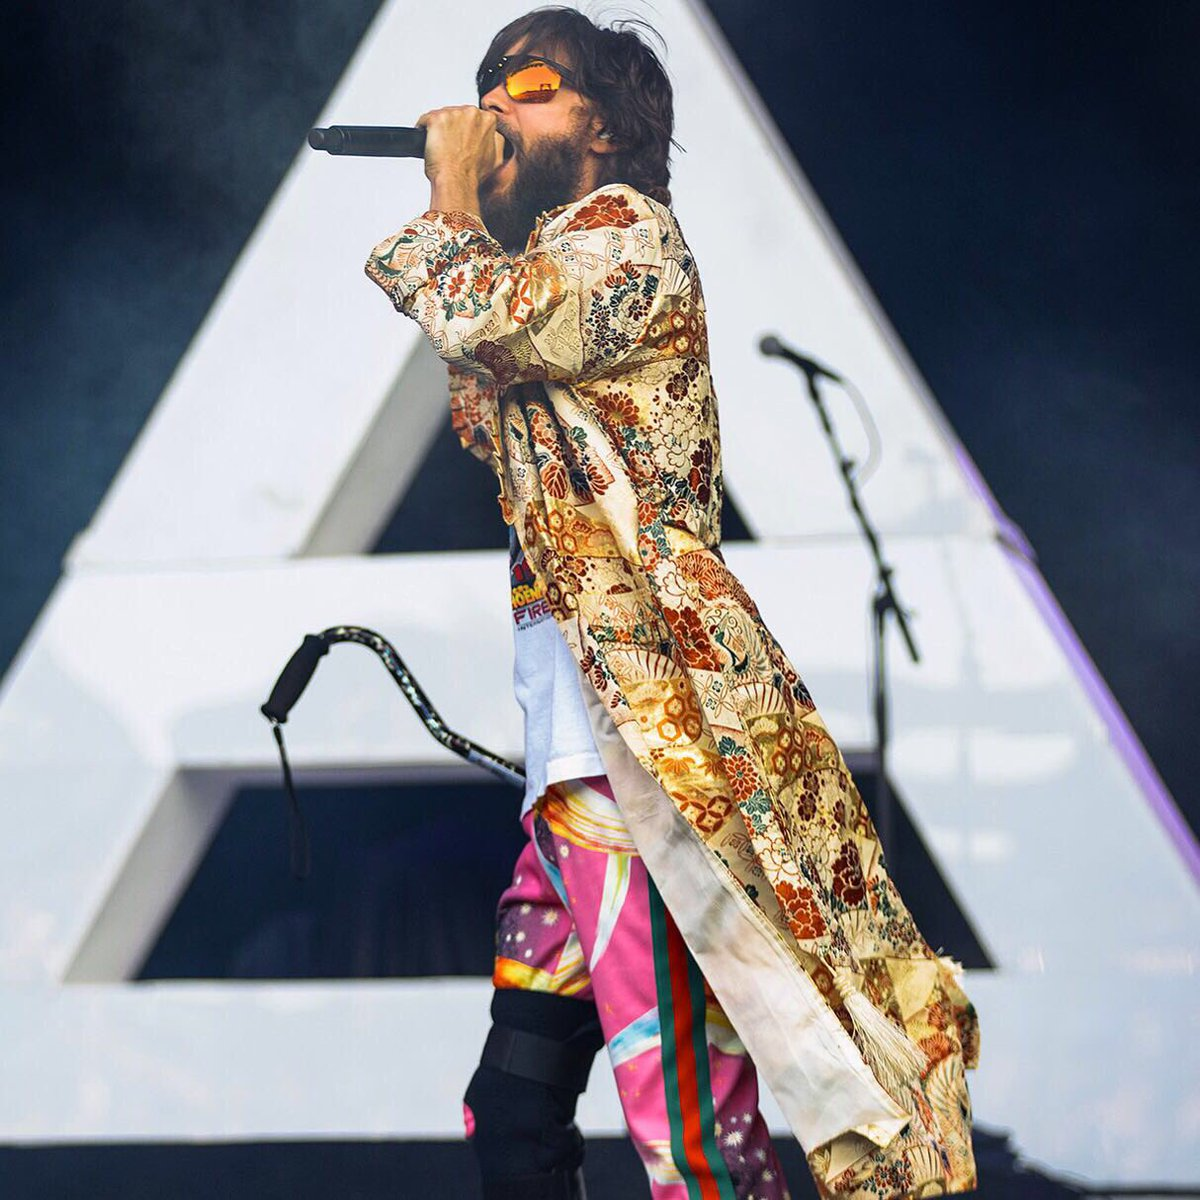 RT @30SECONDSTOMARS: https://t.co/fNWHEQt8yA